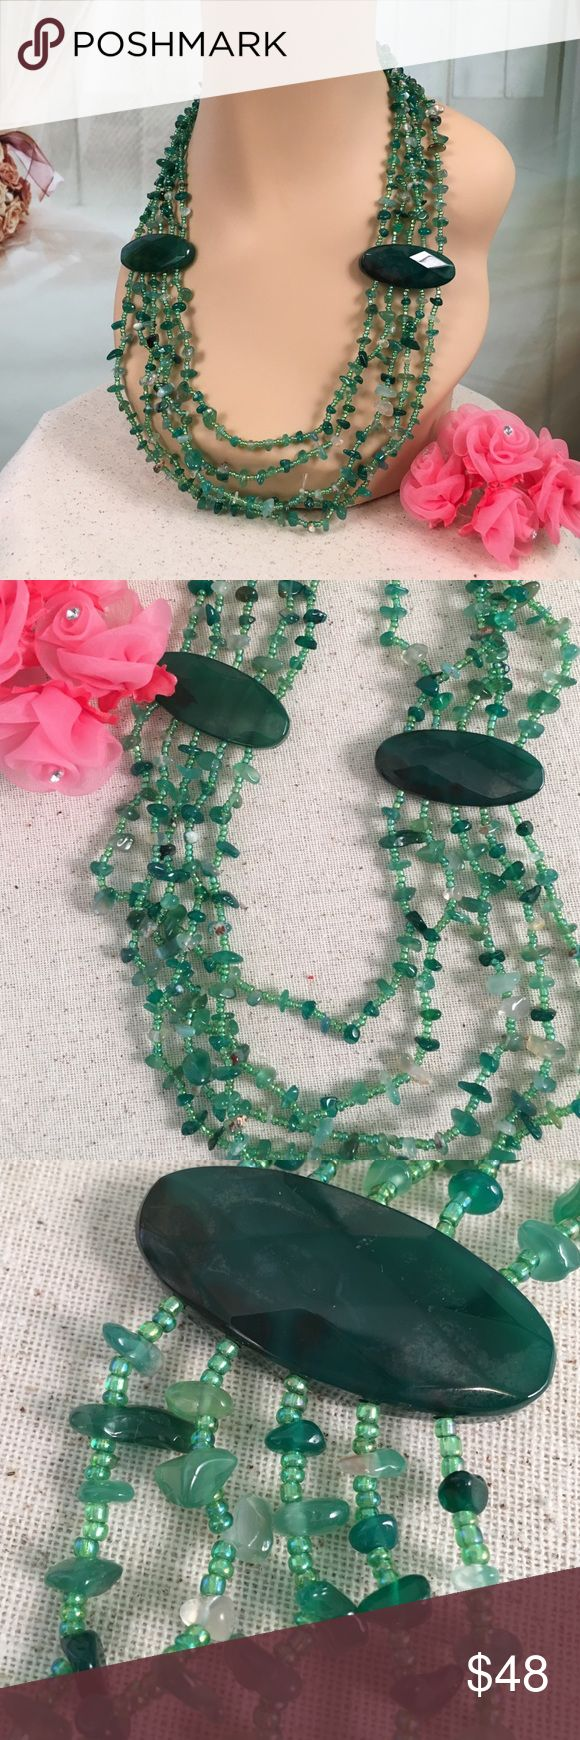 "💞Green Agate, Seed Bead Multi Strand Necklace💞 Beautiful green Agate and seed bead multi strand necklace.  Such a fun piece! 22"" long.  New with tags. Jewelry Necklaces"